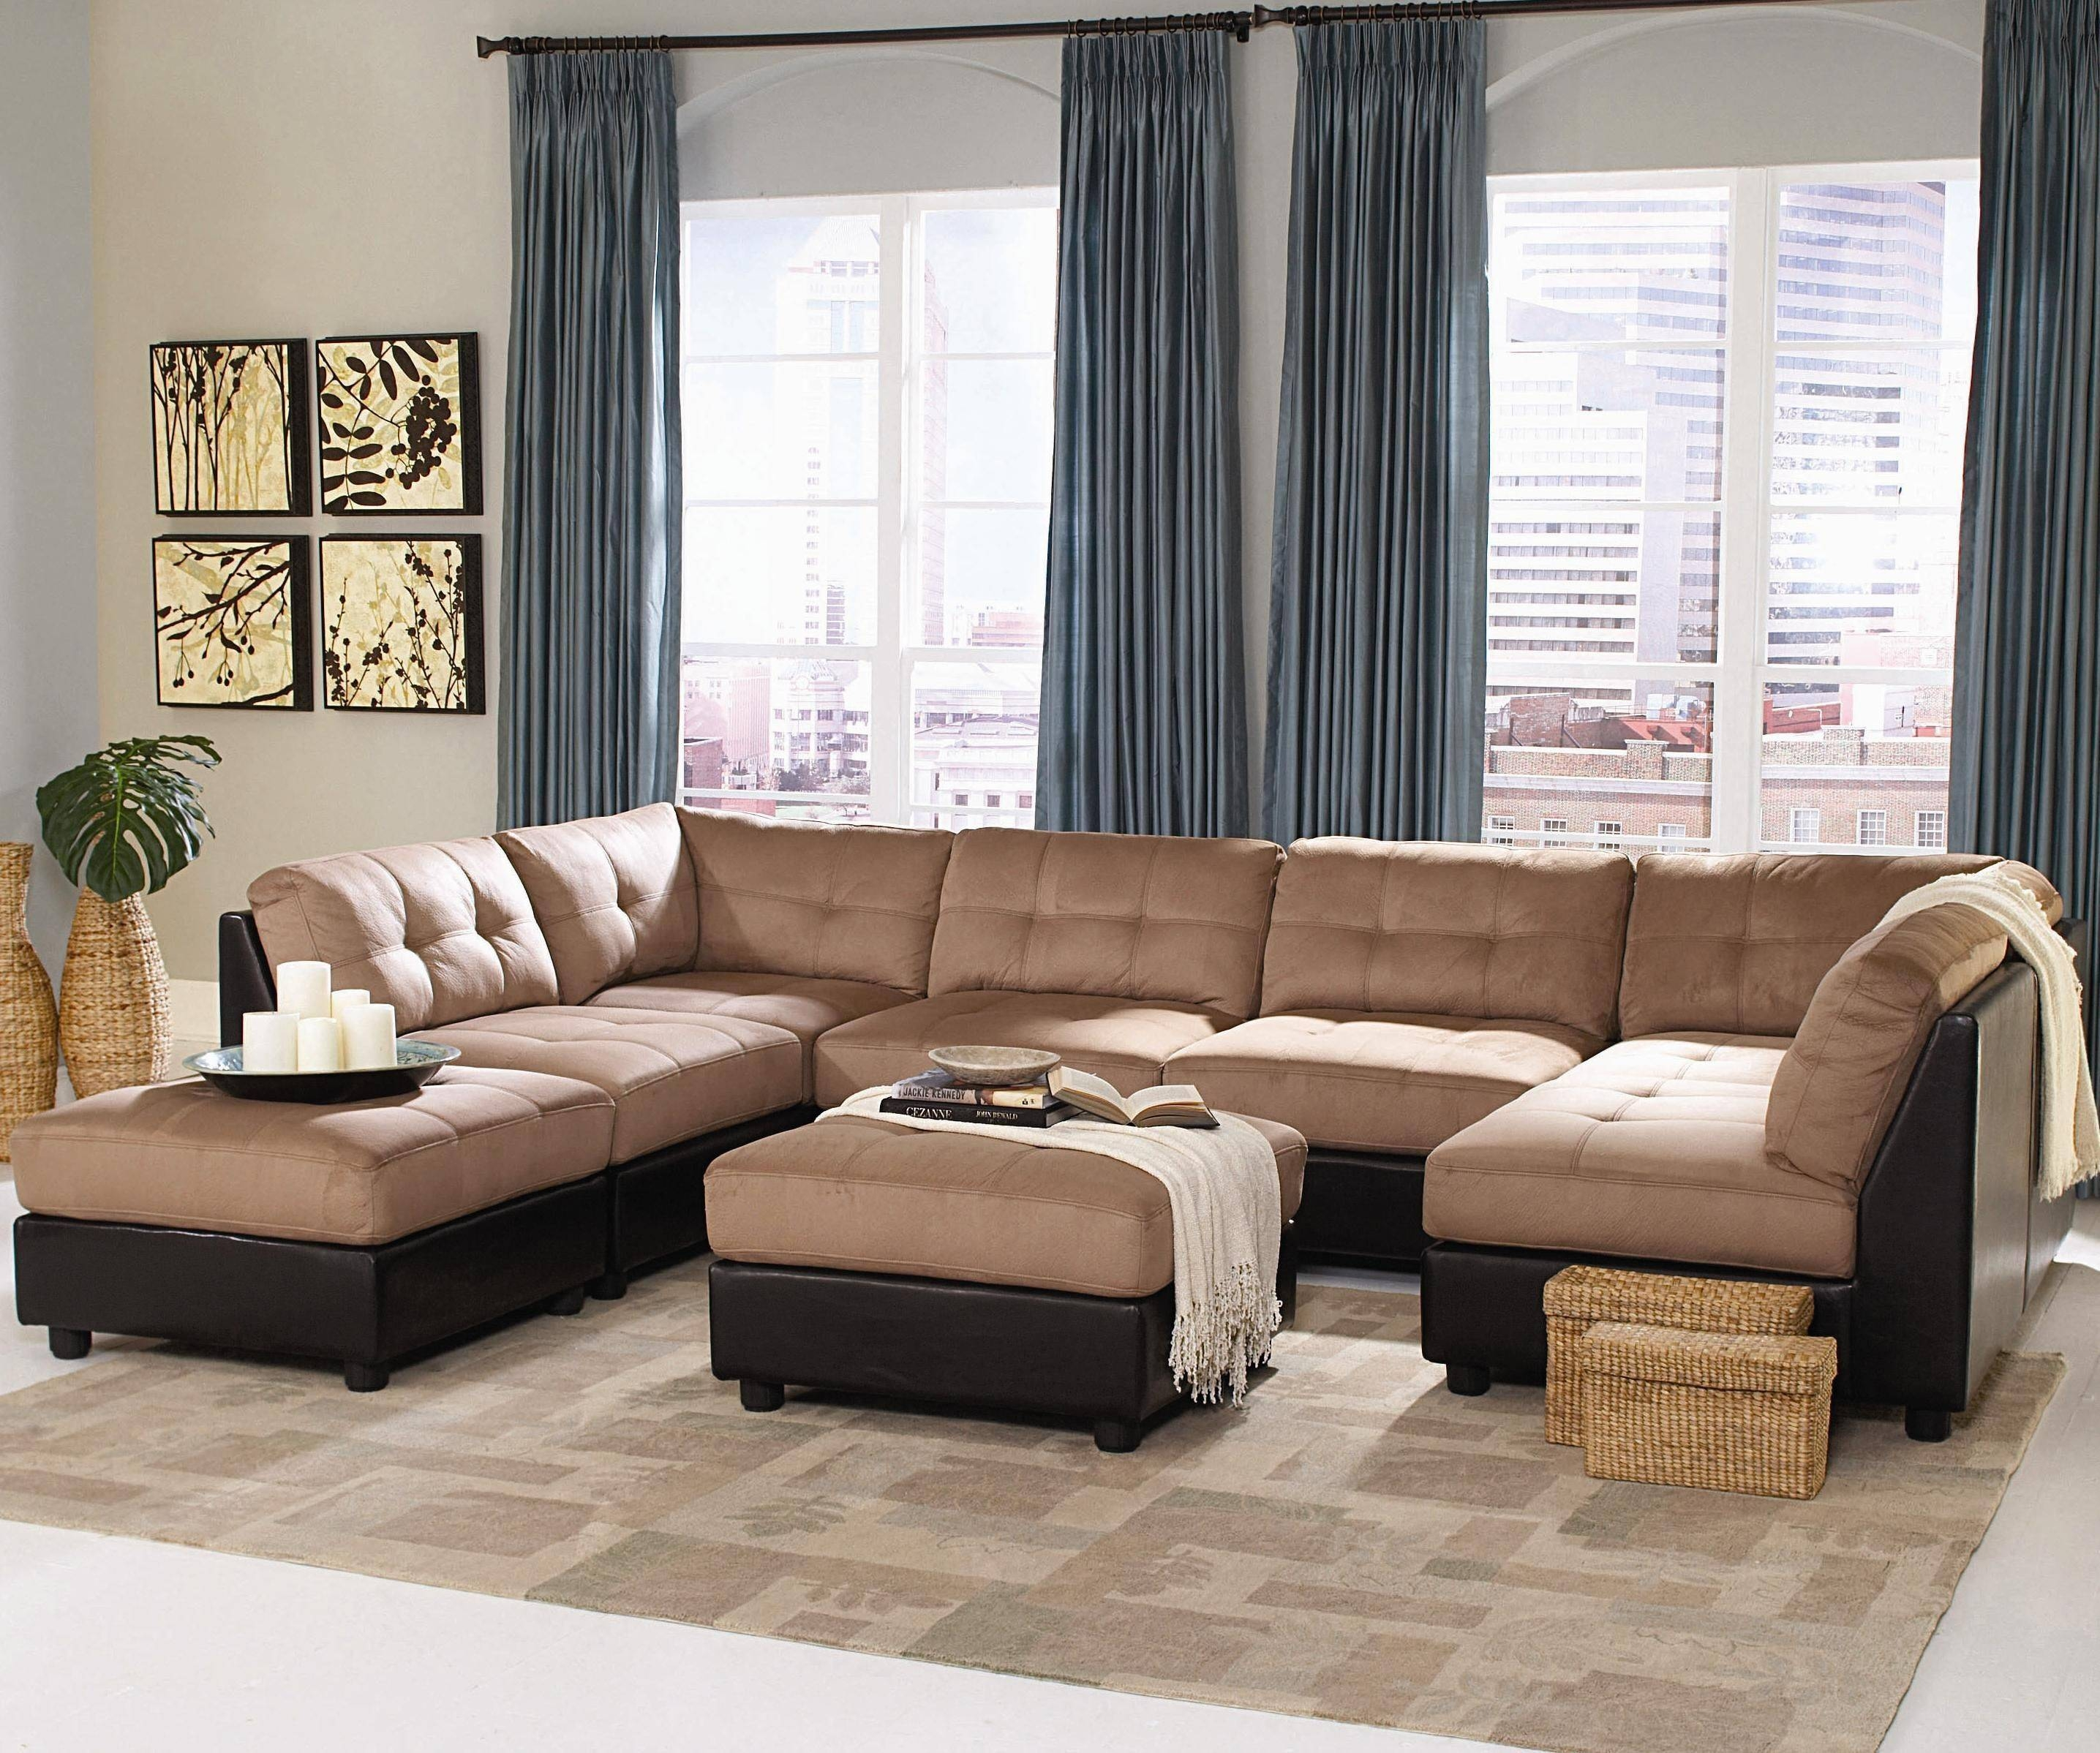 Furniture Home: Fancy Modern Sectional Sofas 21 With Additional with regard to Modern Microfiber Sectional Sofa (Image 10 of 30)